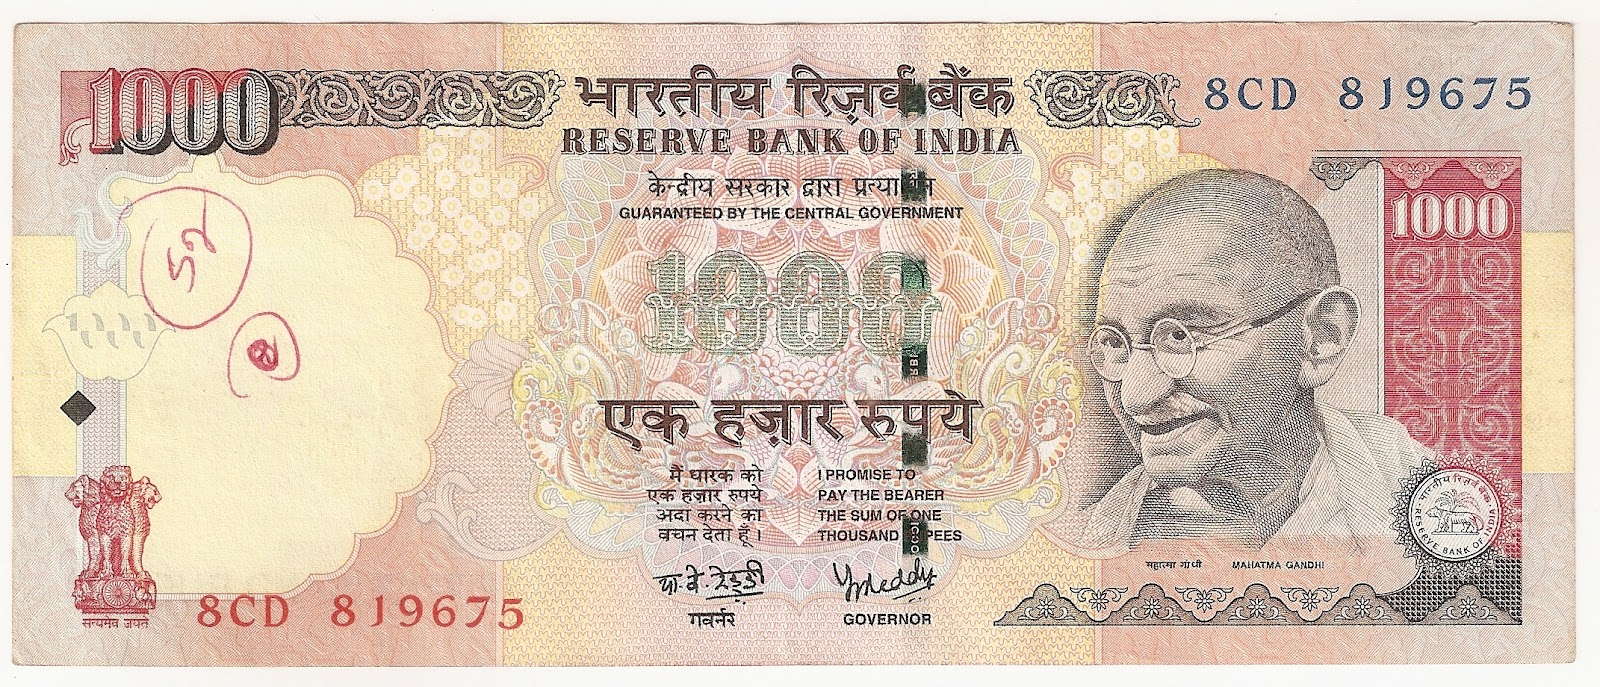 coins and more: Did you know series (5): 1000 rupee notes ...